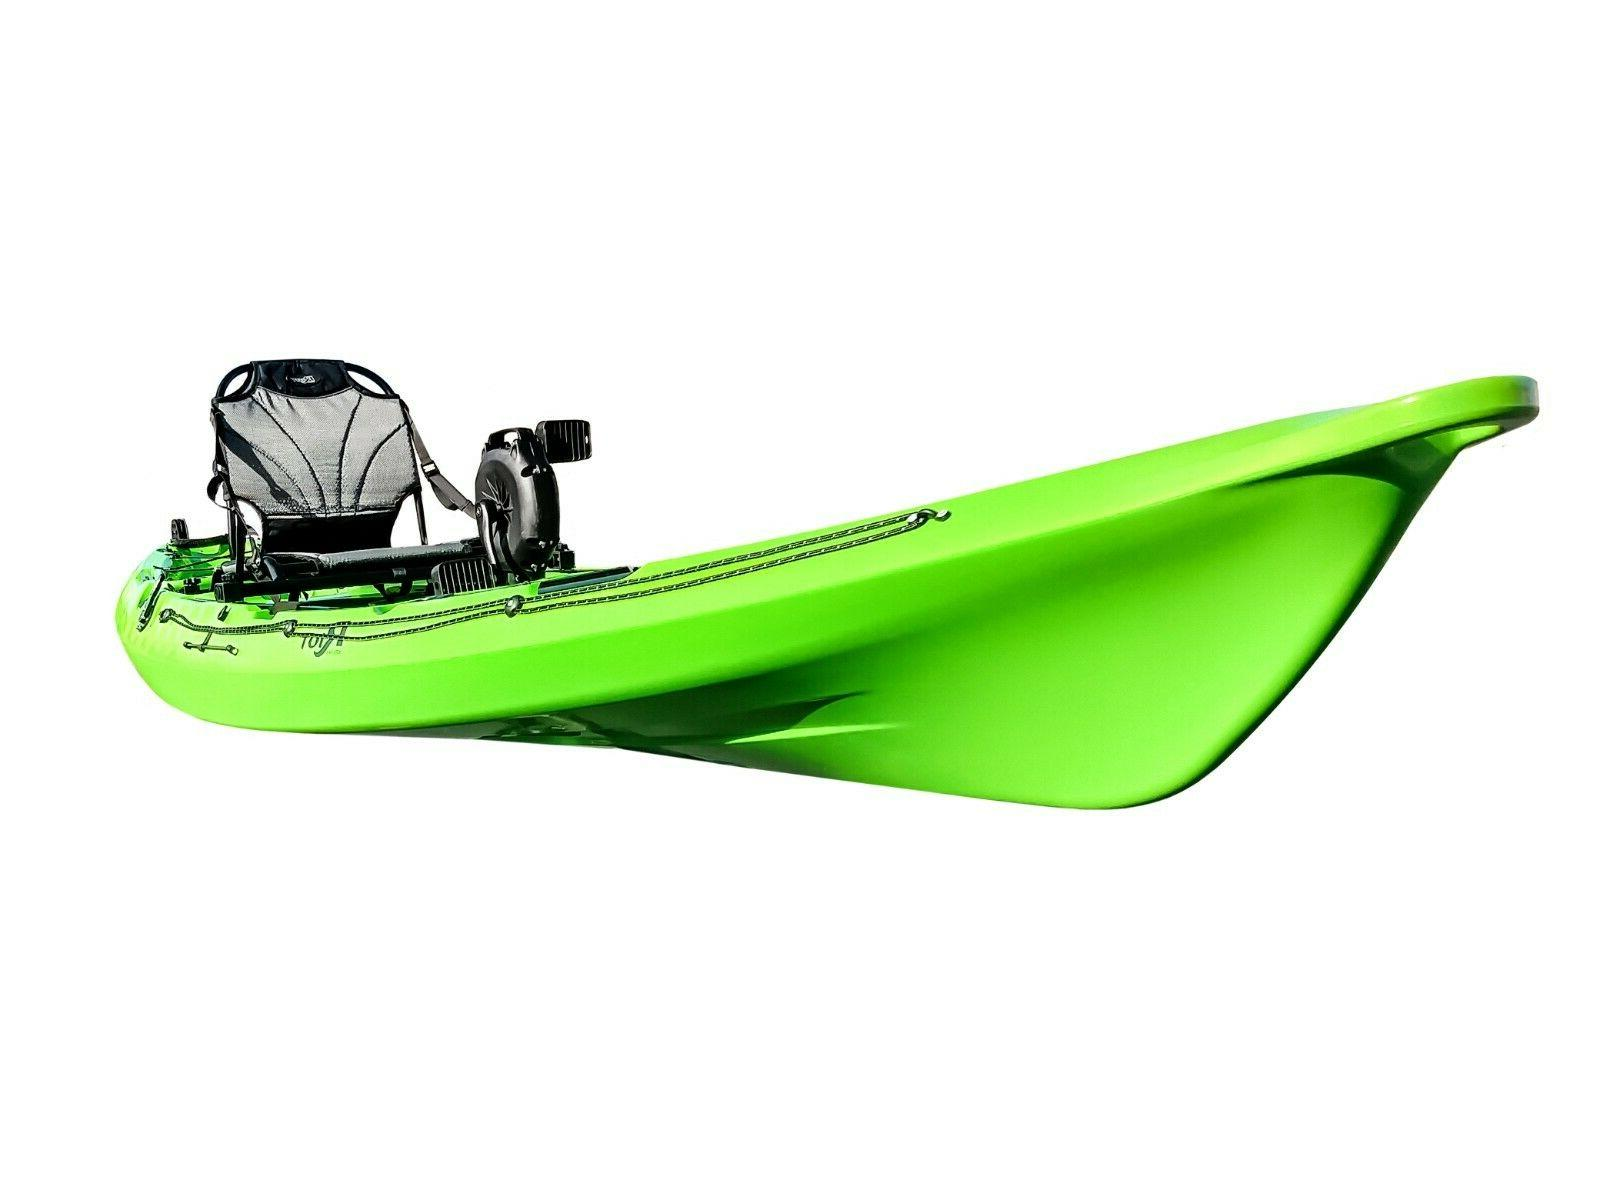 Fishing Kayak Pedal strong Propeller Driven Deluxe